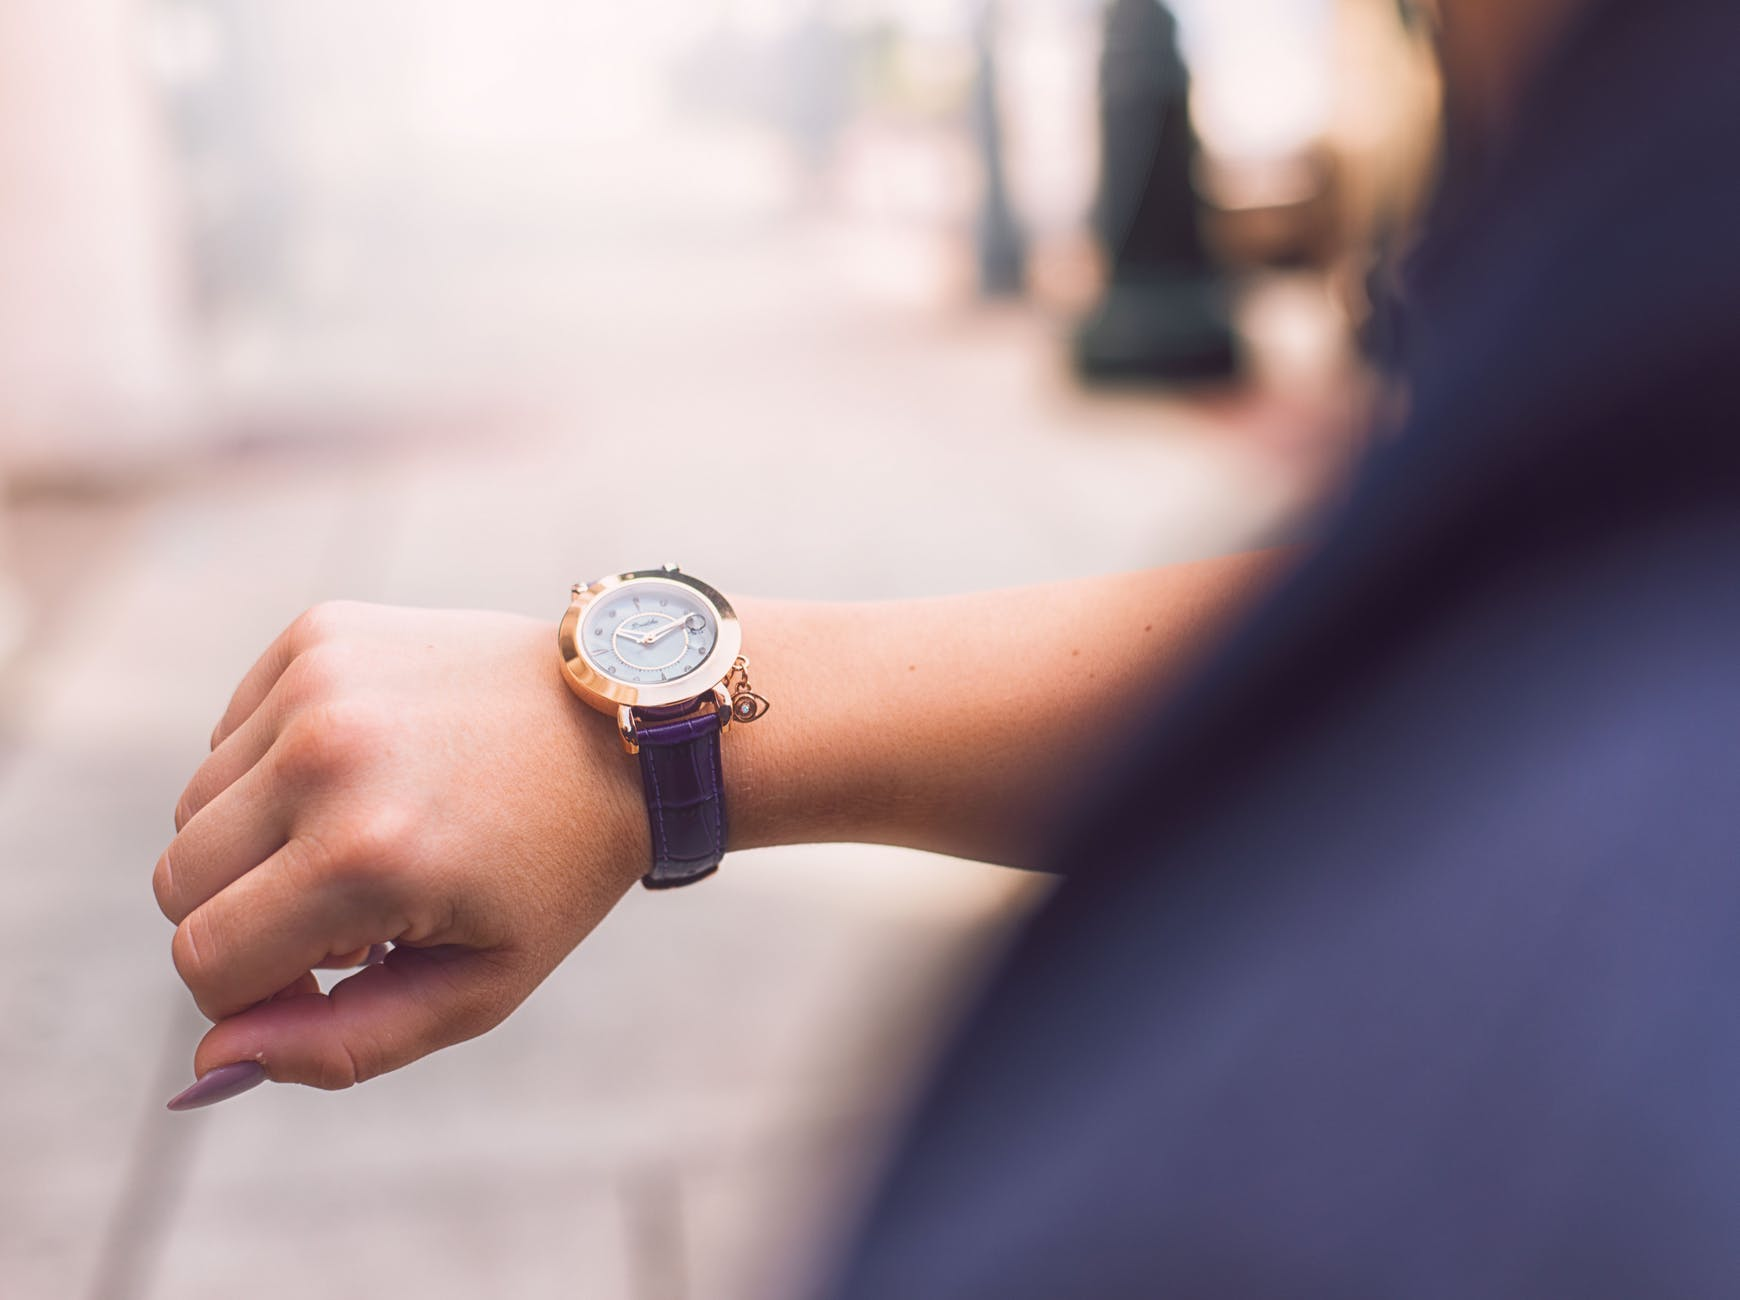 person wearing leather wrist watch